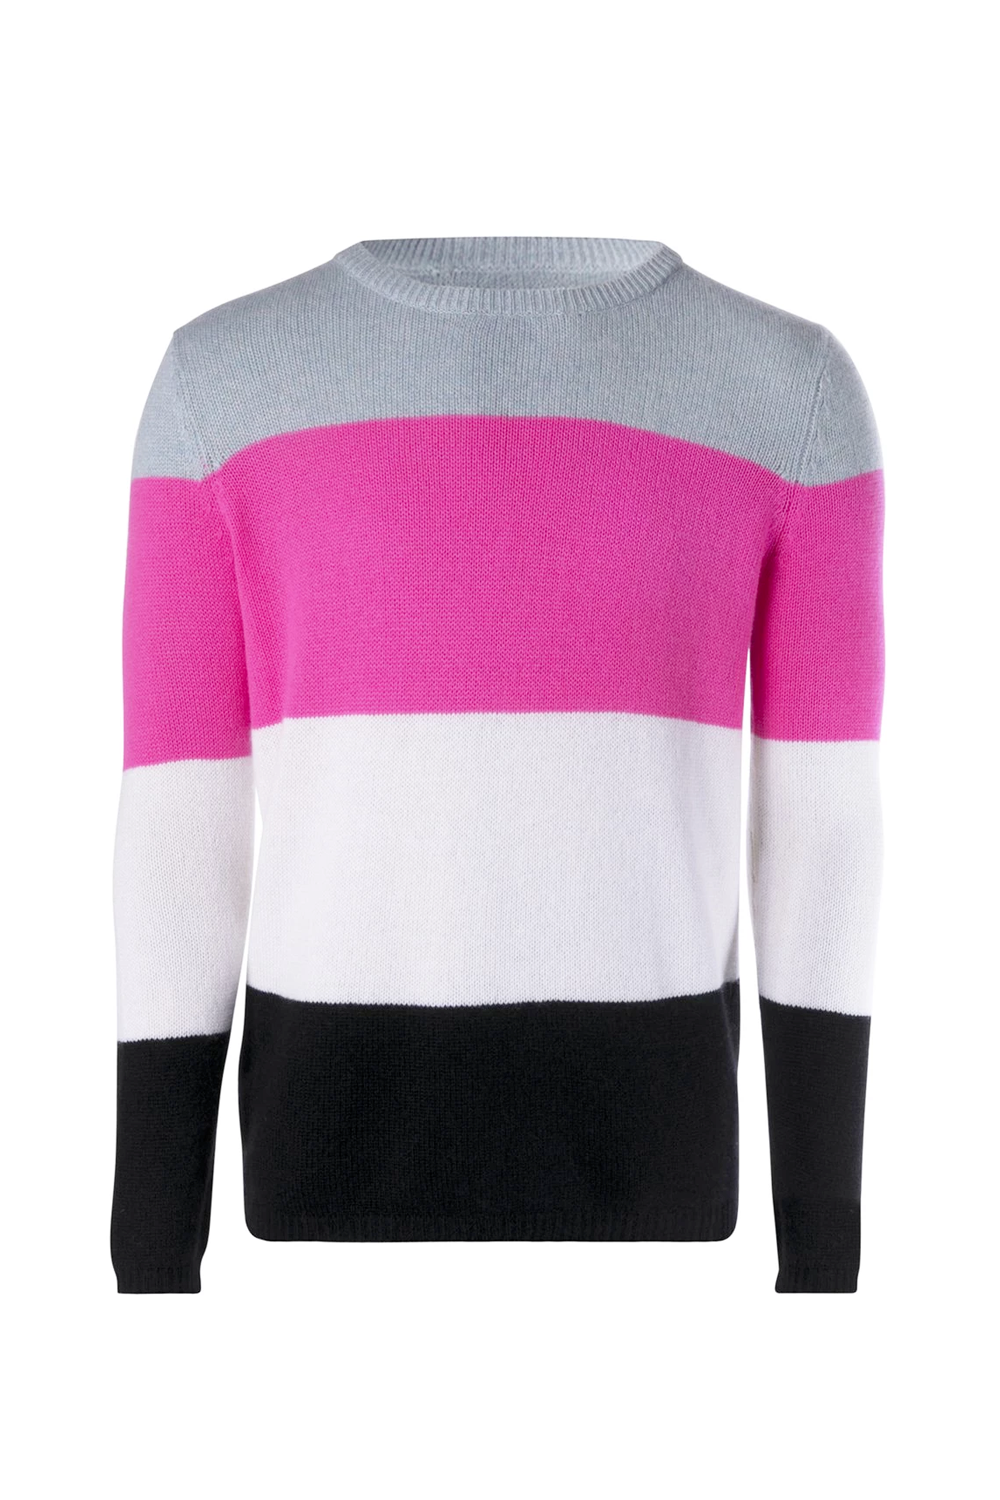 Unisex Pink Striped Cashmere Jumper